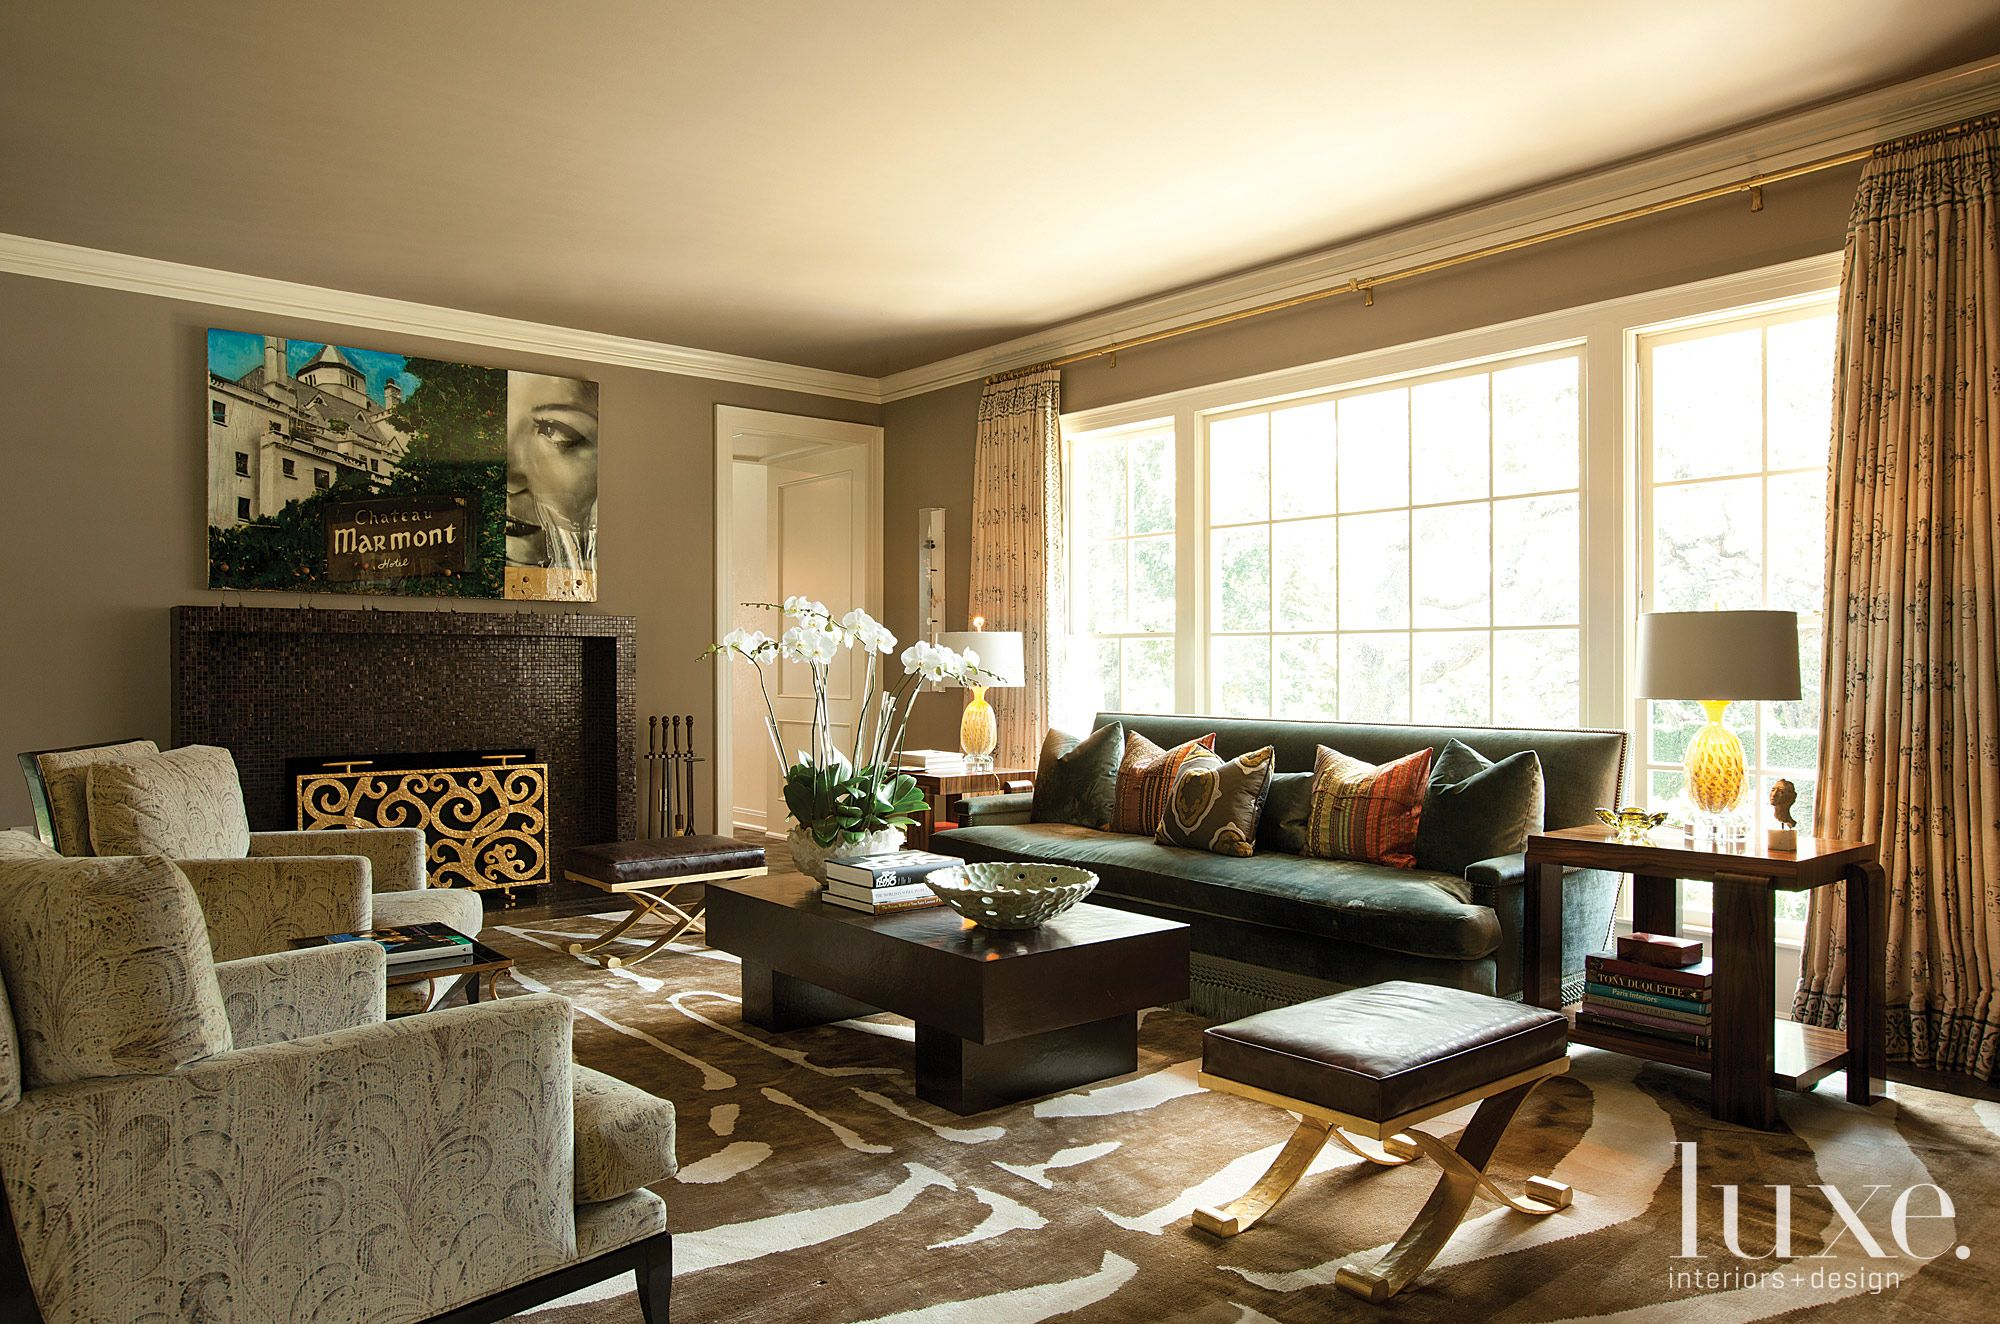 Restored Sitting Room with Eclectic Accents